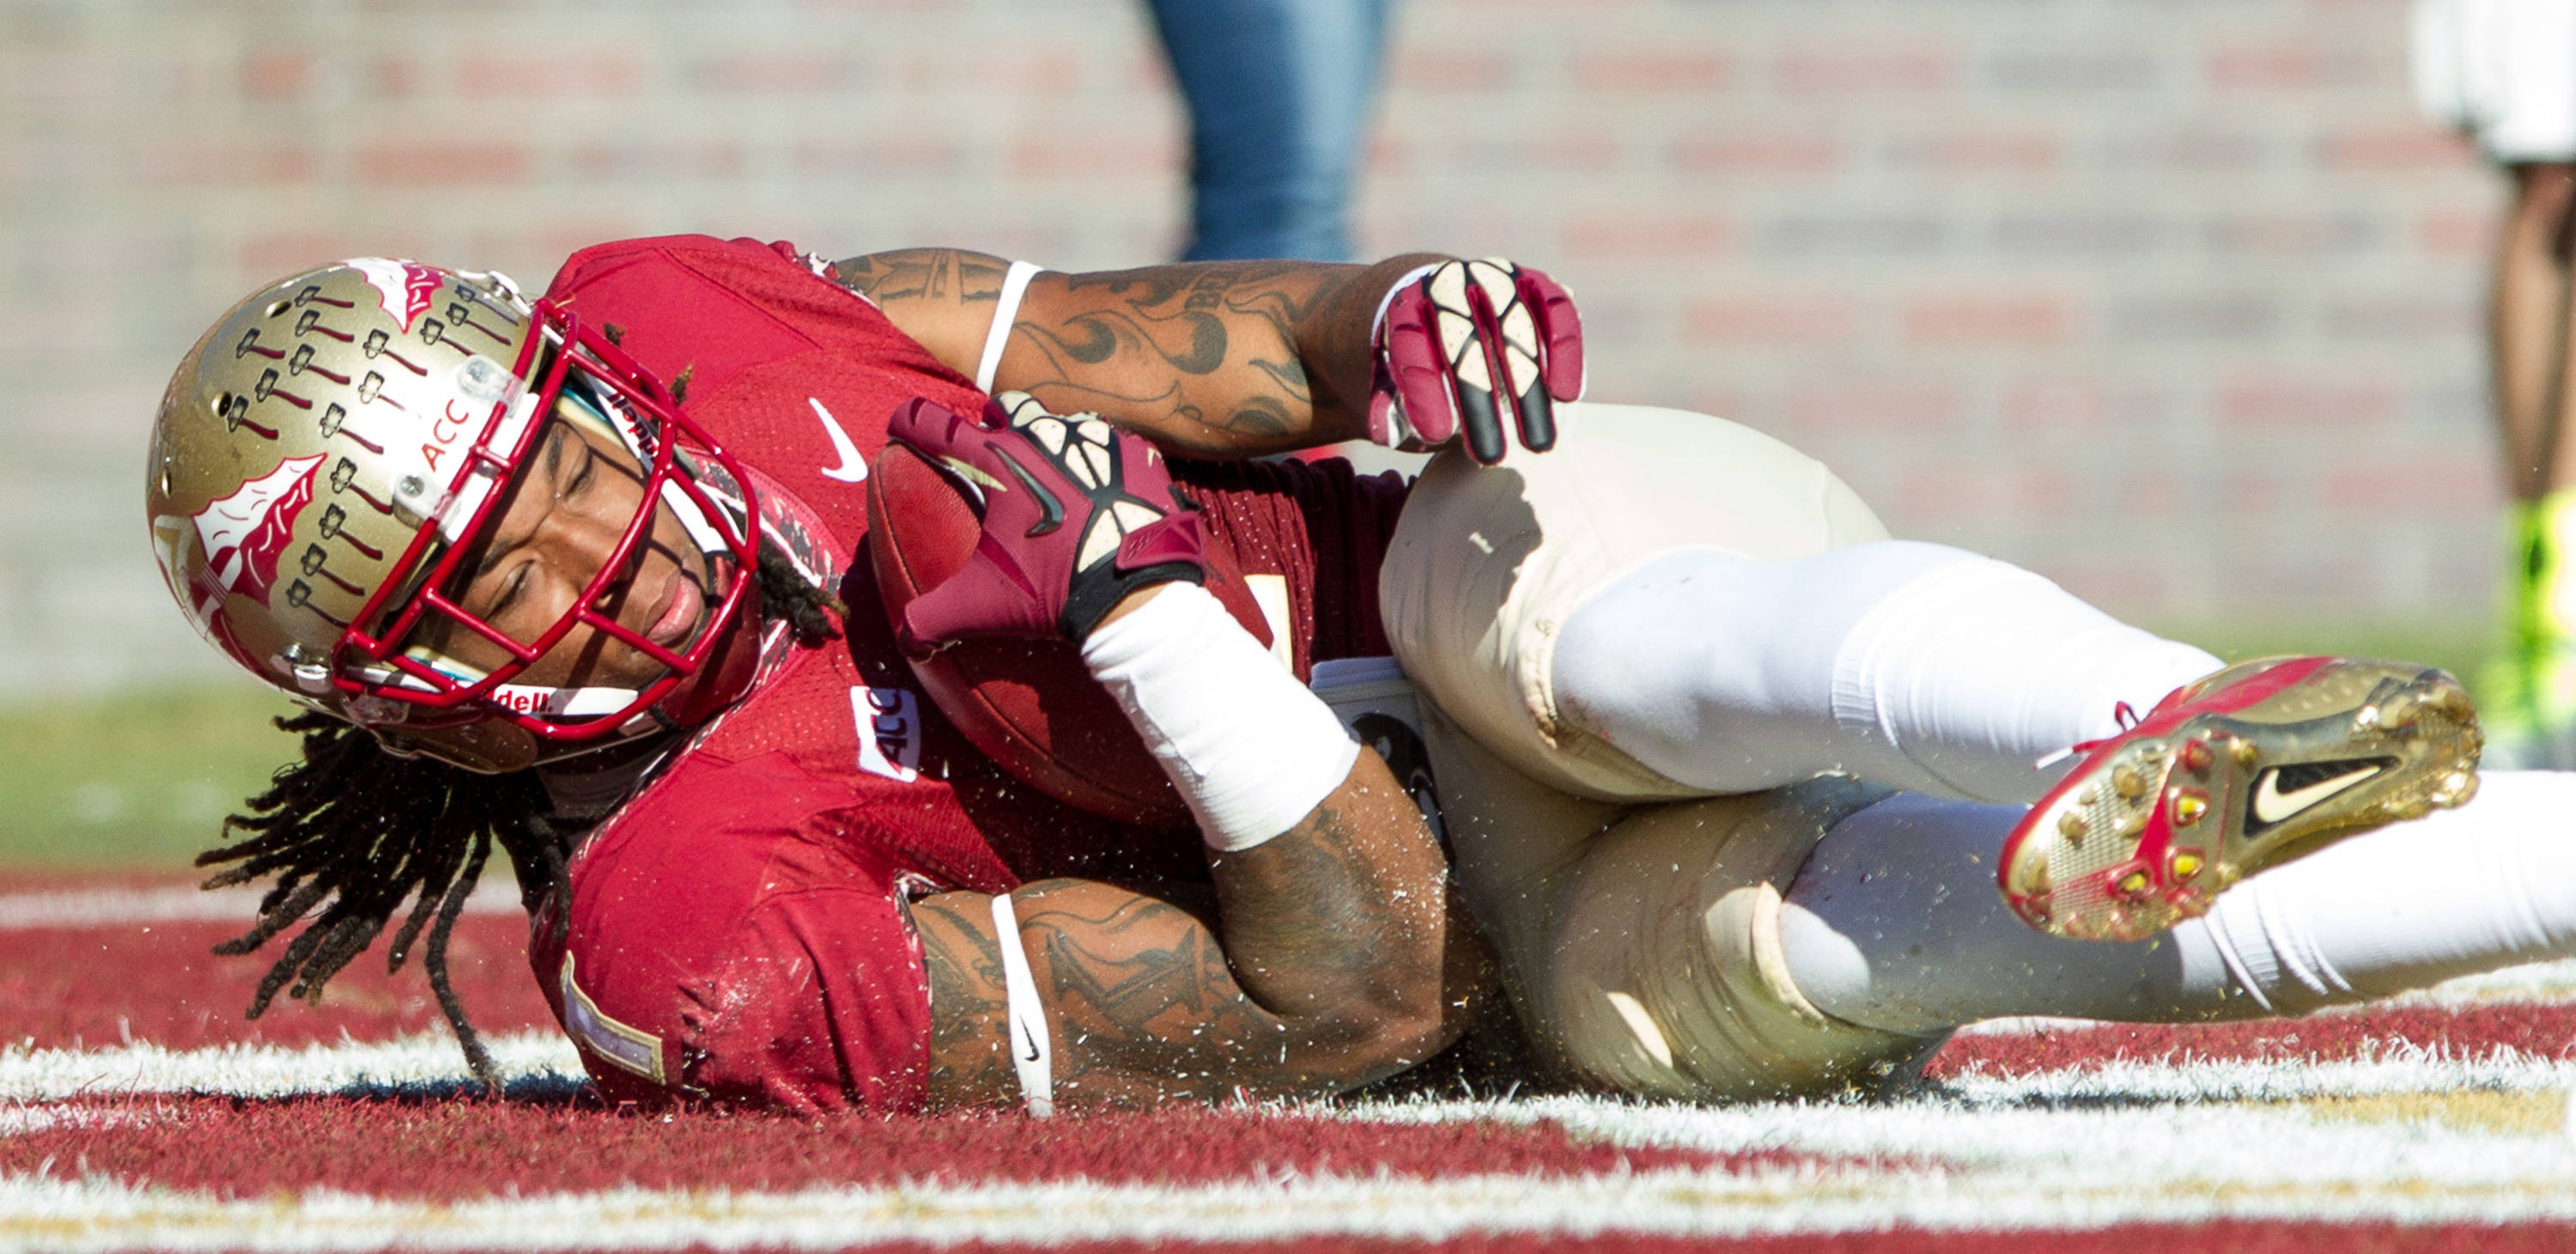 Kelvin Benjamin (1) dives in to the end zone during FSU Football's 49-17 win over NC State on Saturday, October 26, 2013 in Tallahassee, Fla. Photo by Michael Schwarz.